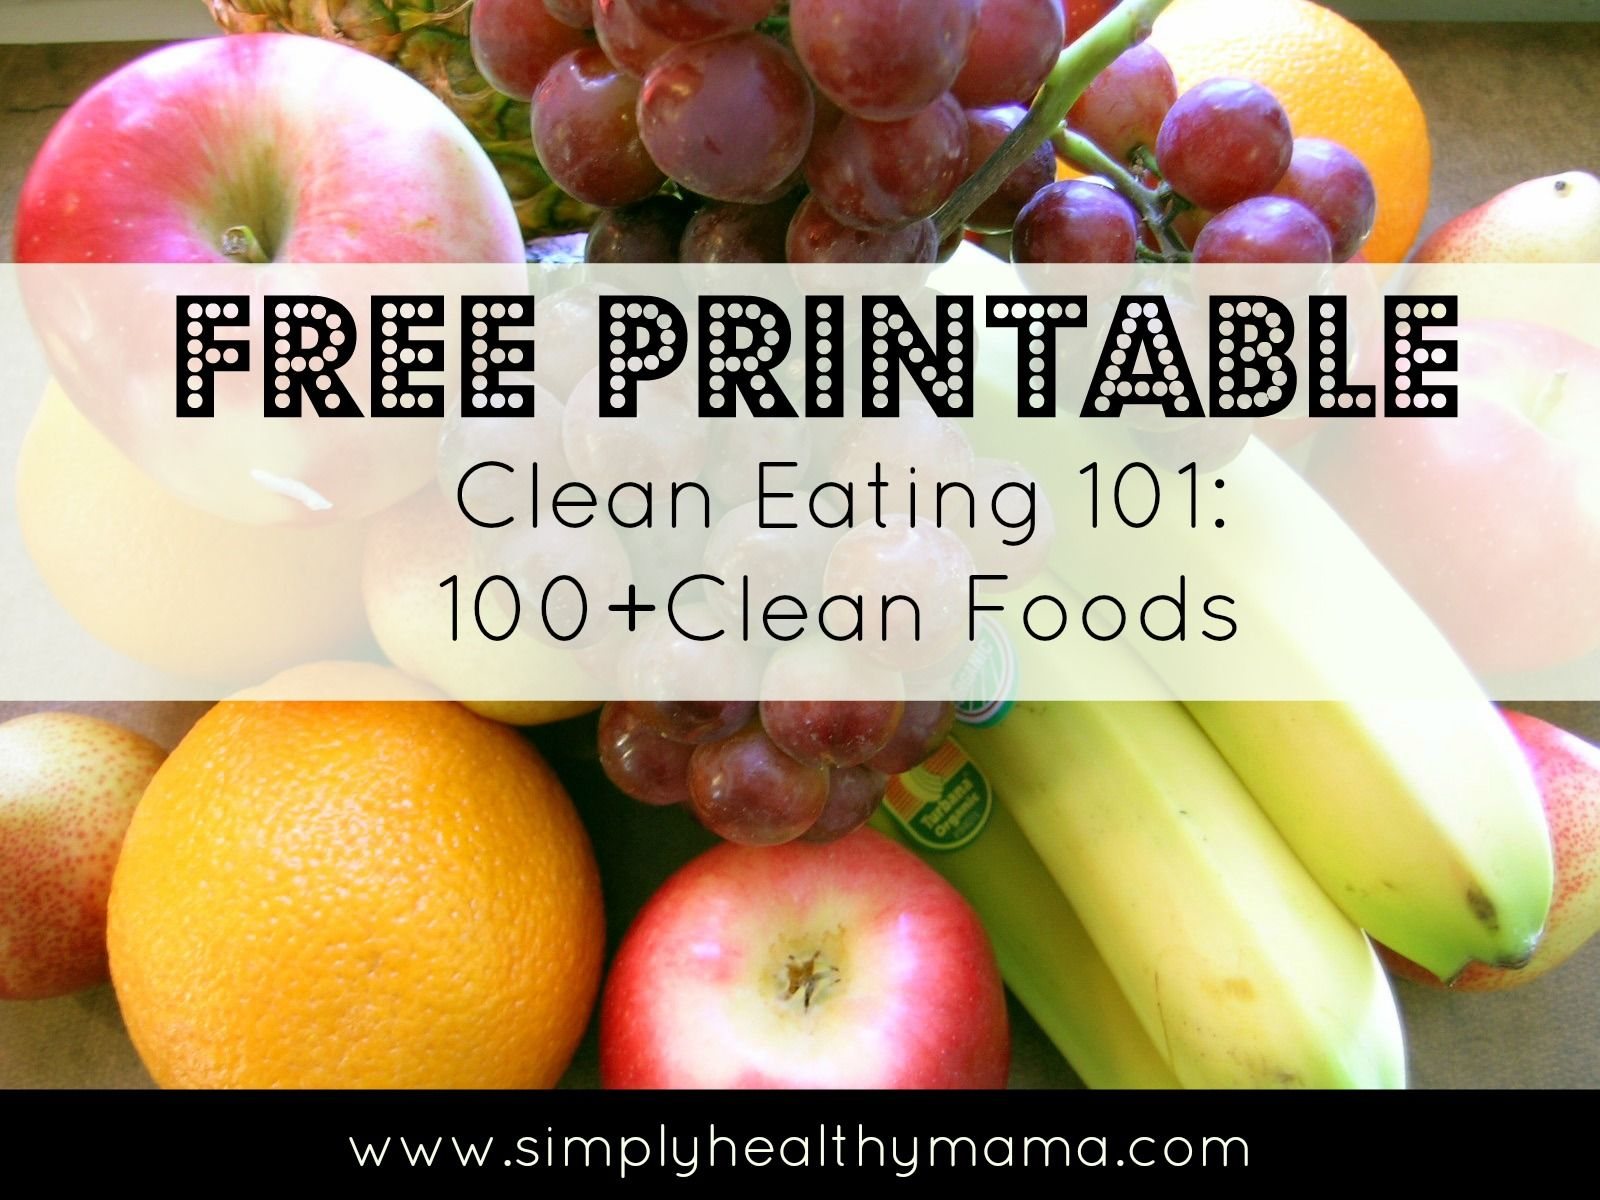 Clean eating 101 free printable list with over 100 clean